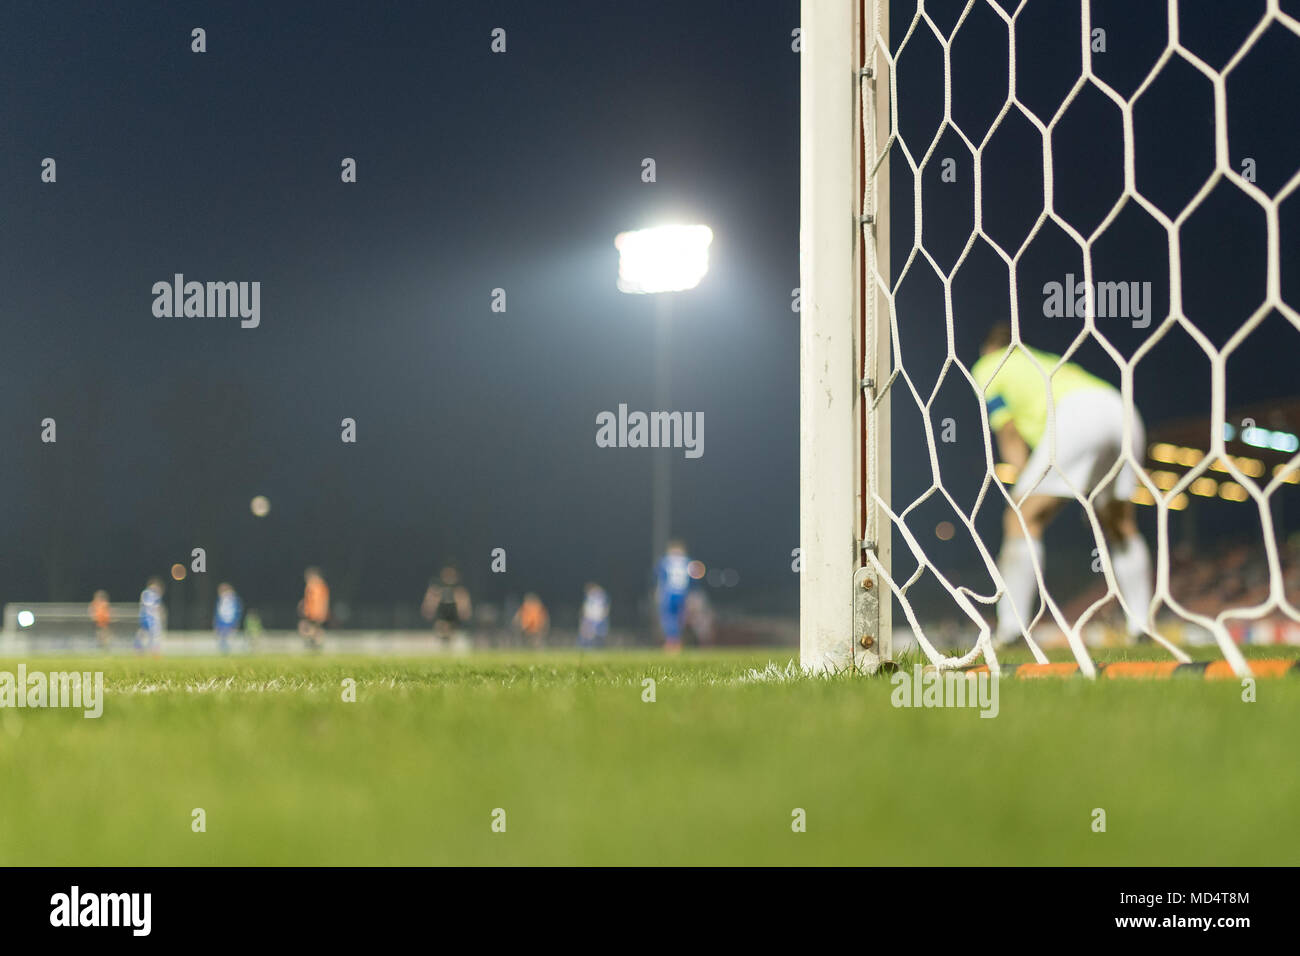 Detail of the post and net of the football goal in the background players in action. - Stock Image